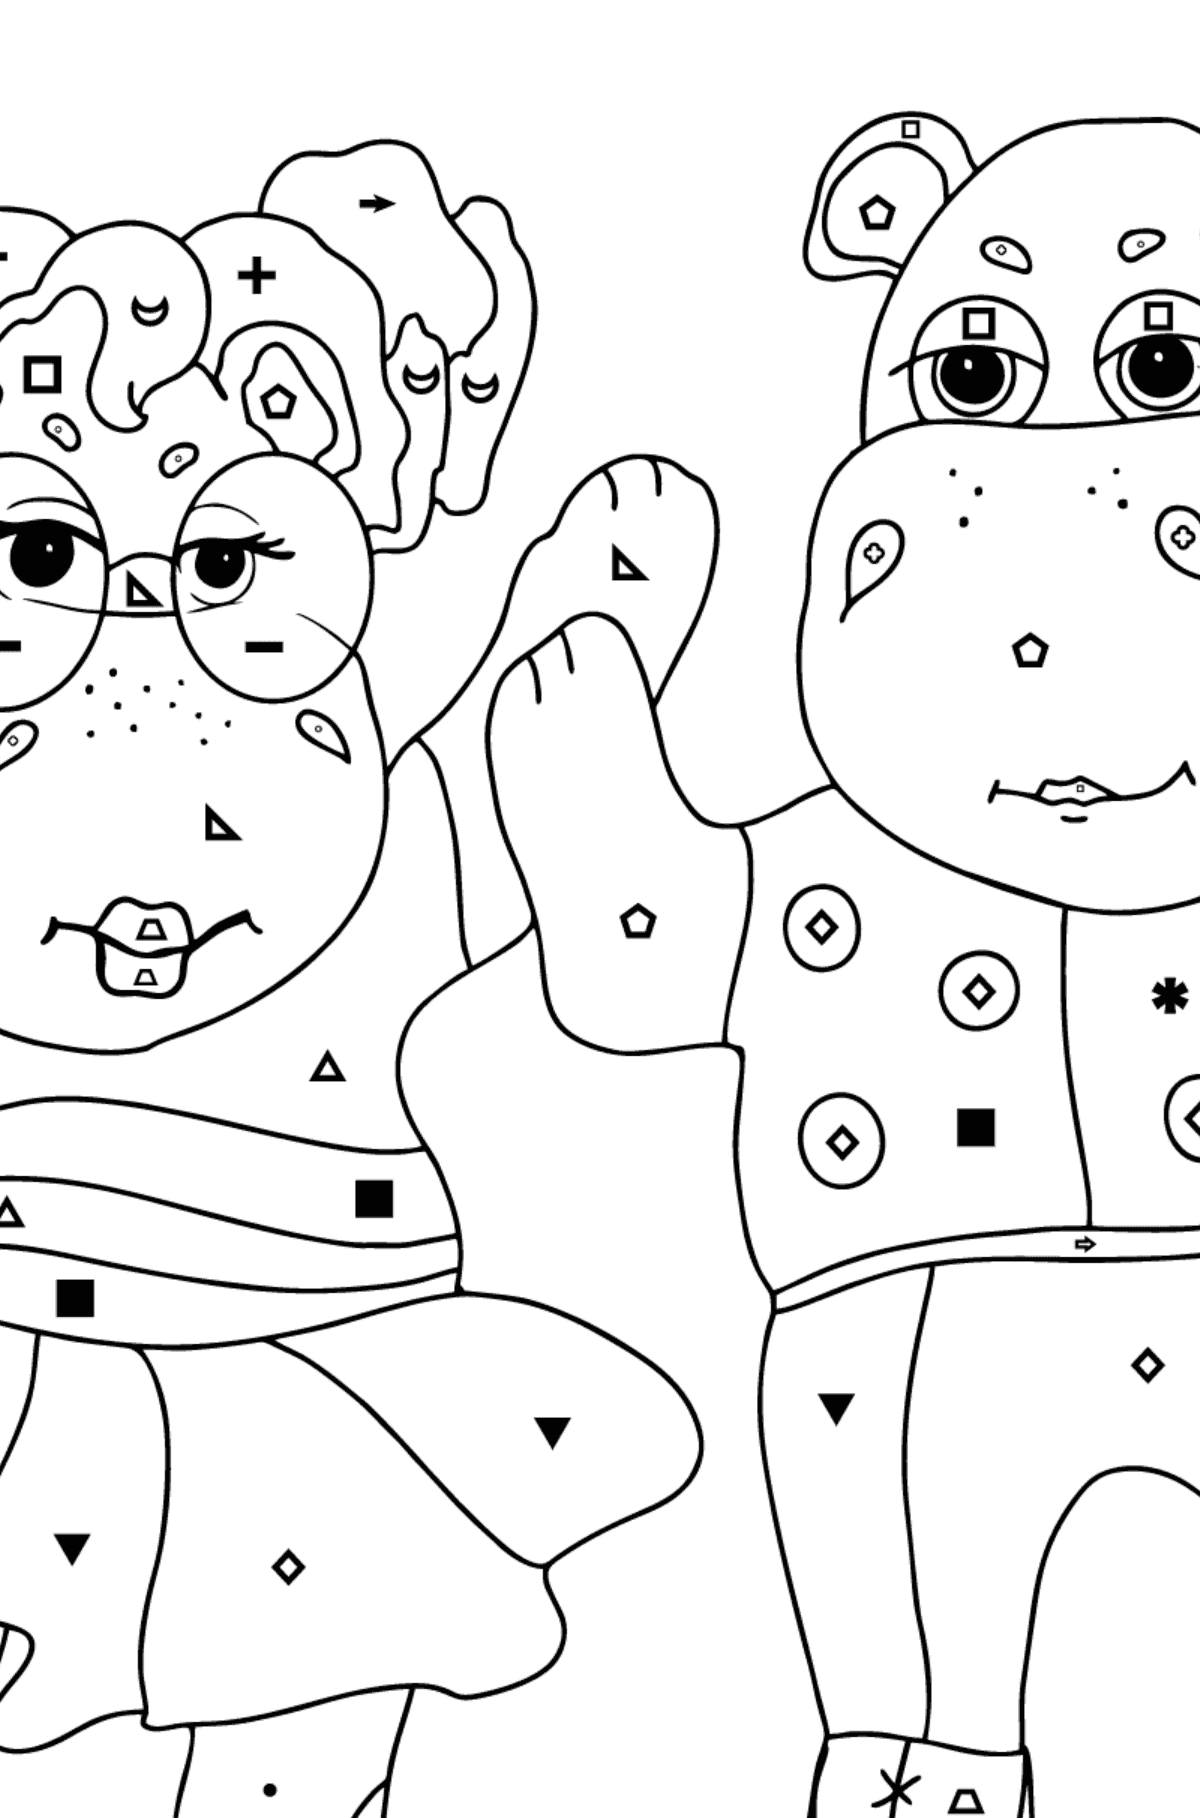 Coloring Page - Hippos are Dancing for Children  - Color by Symbols and Geometric Shapes